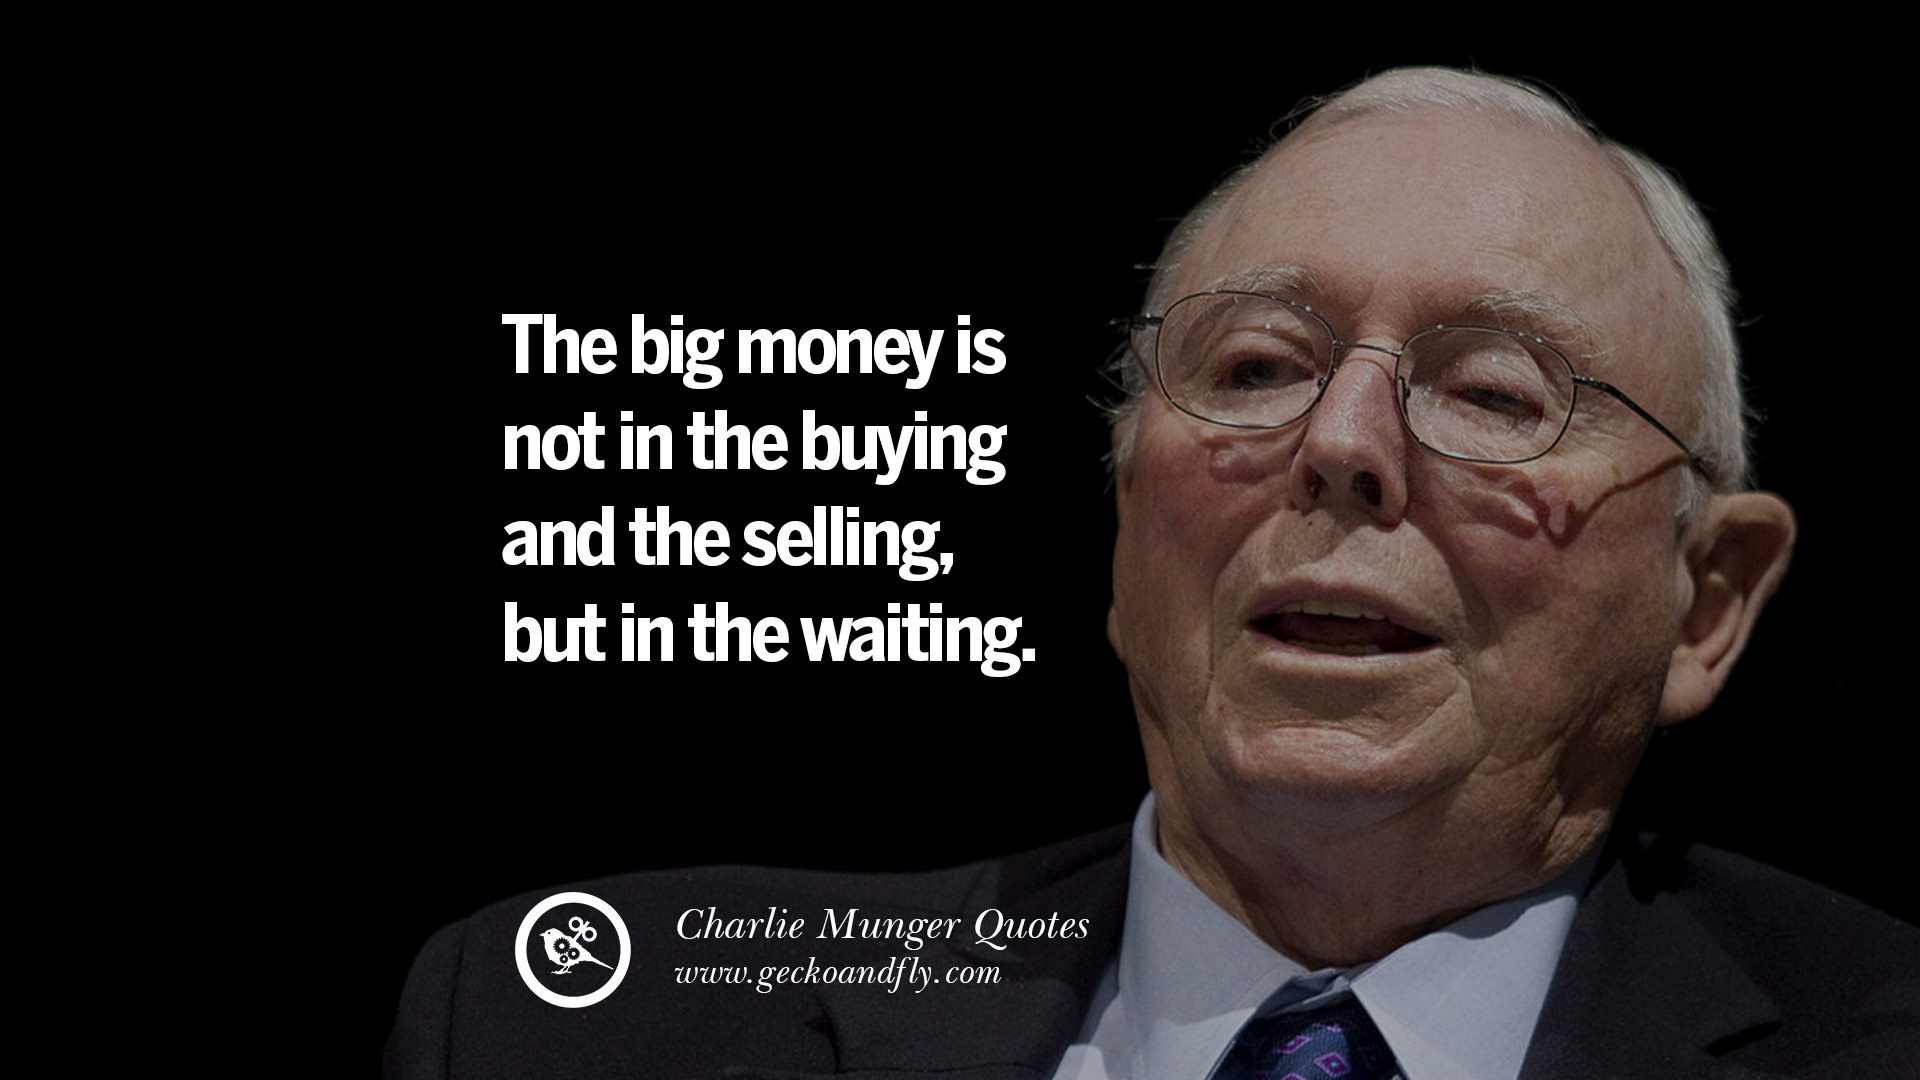 Wall Street Quotes Brilliant 18 Brilliant Charlie Munger Quotes On Wall Street And Investment